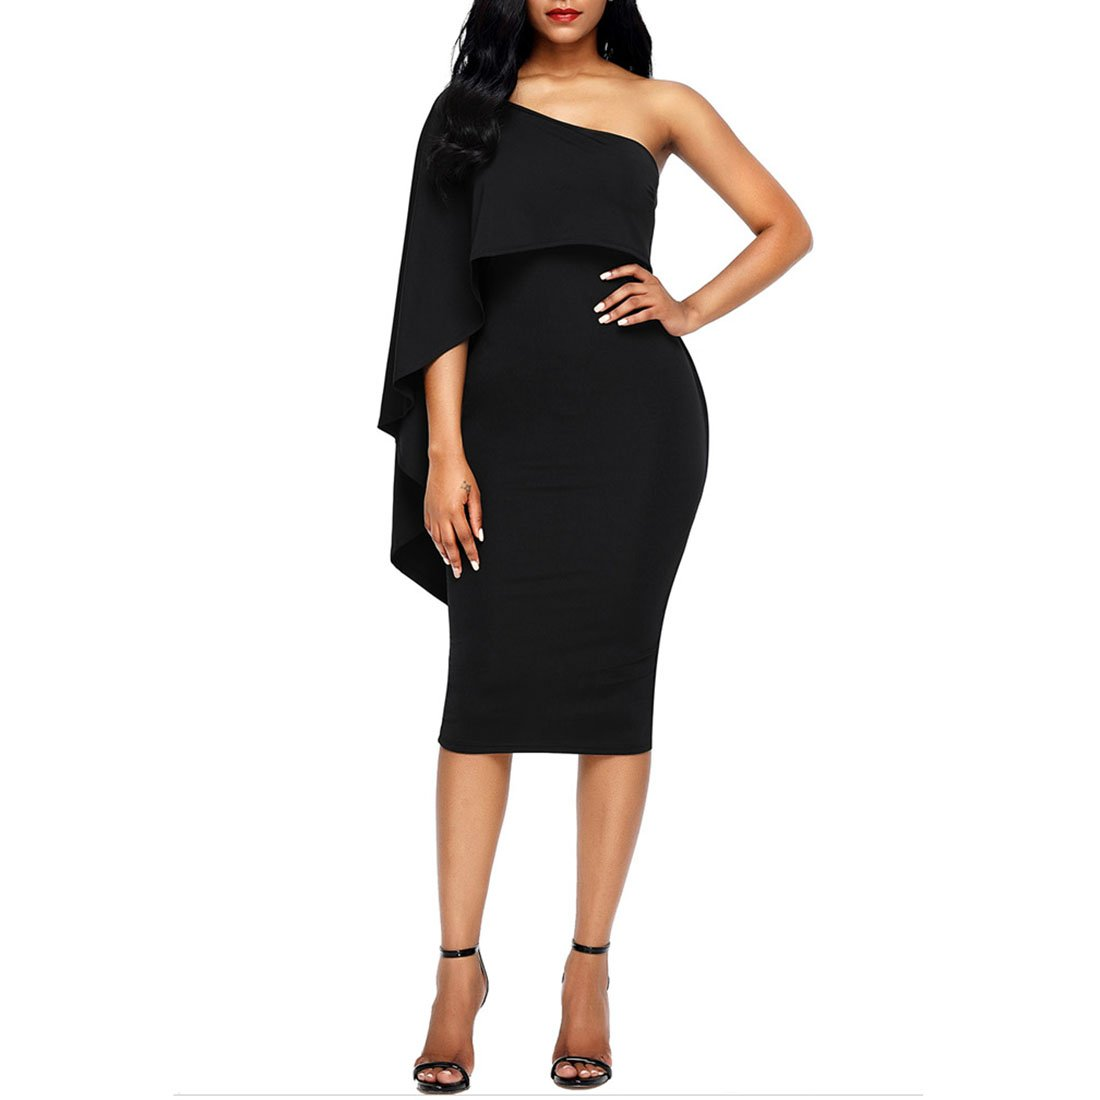 Kleid der Frau Frauen Bodycon Kleid Fashion Party Kleid Damen Mini ...